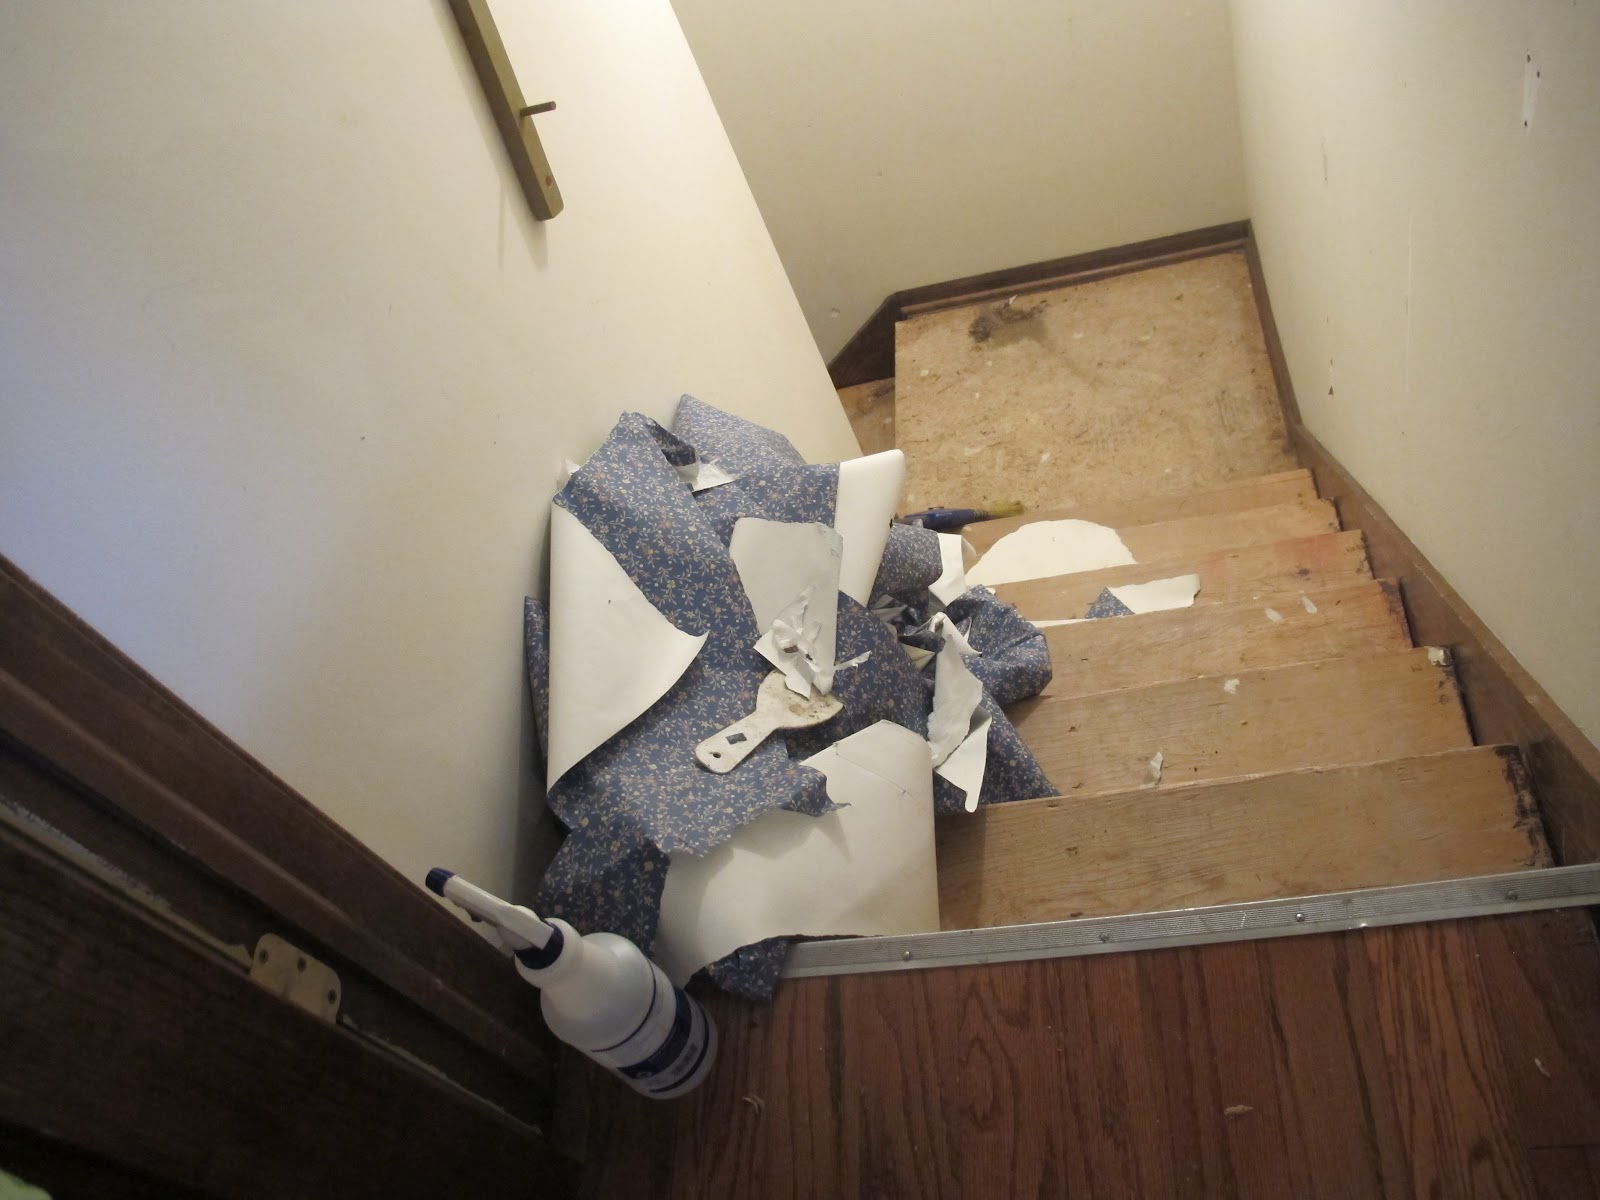 home wallpaper removal solution wallpaper stripping solution download wallpaper remover